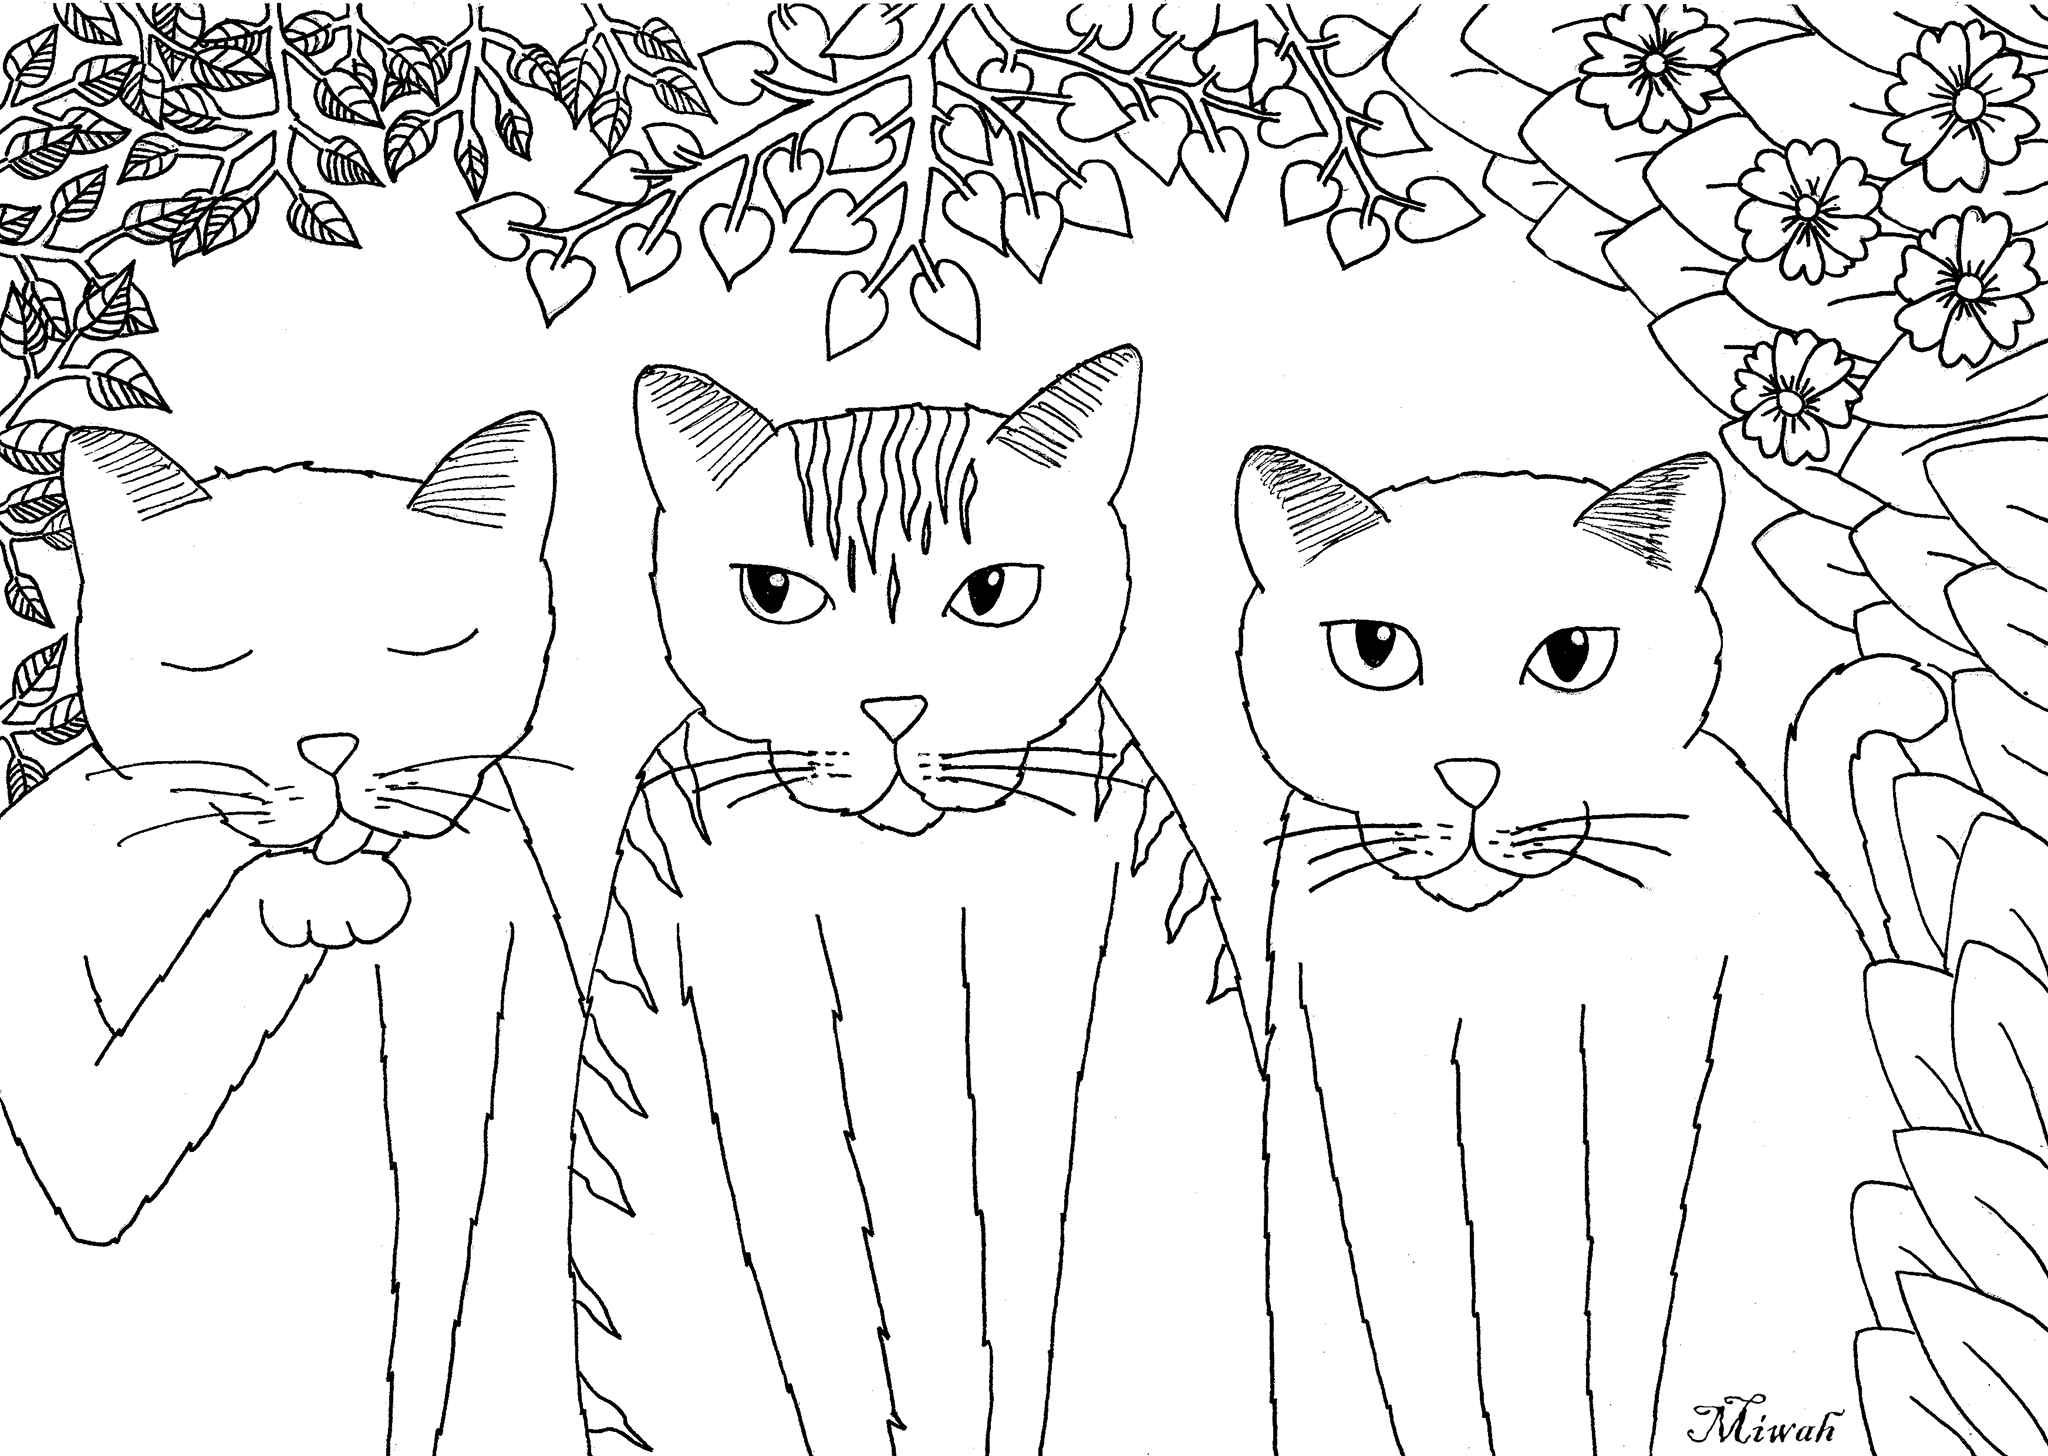 Tree Little Funny Cats Cats Coloring Pages For Adults Just Color Animal Coloring Pages Cat Coloring Book Cat Coloring Page